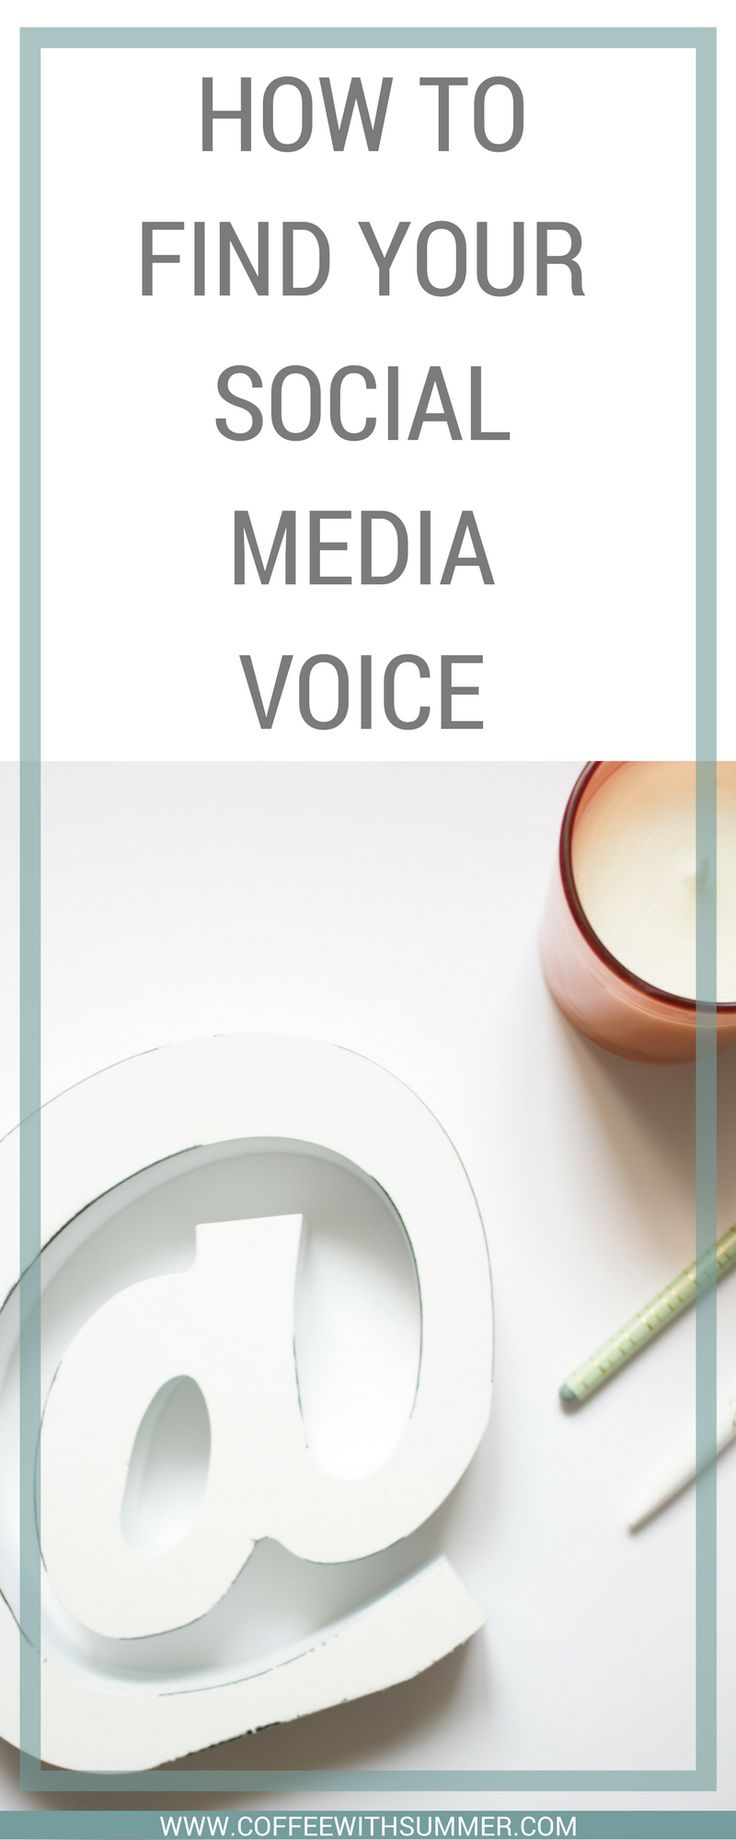 How To Find Your Social Media Voice (6 Tips!) | Coffee With Summer